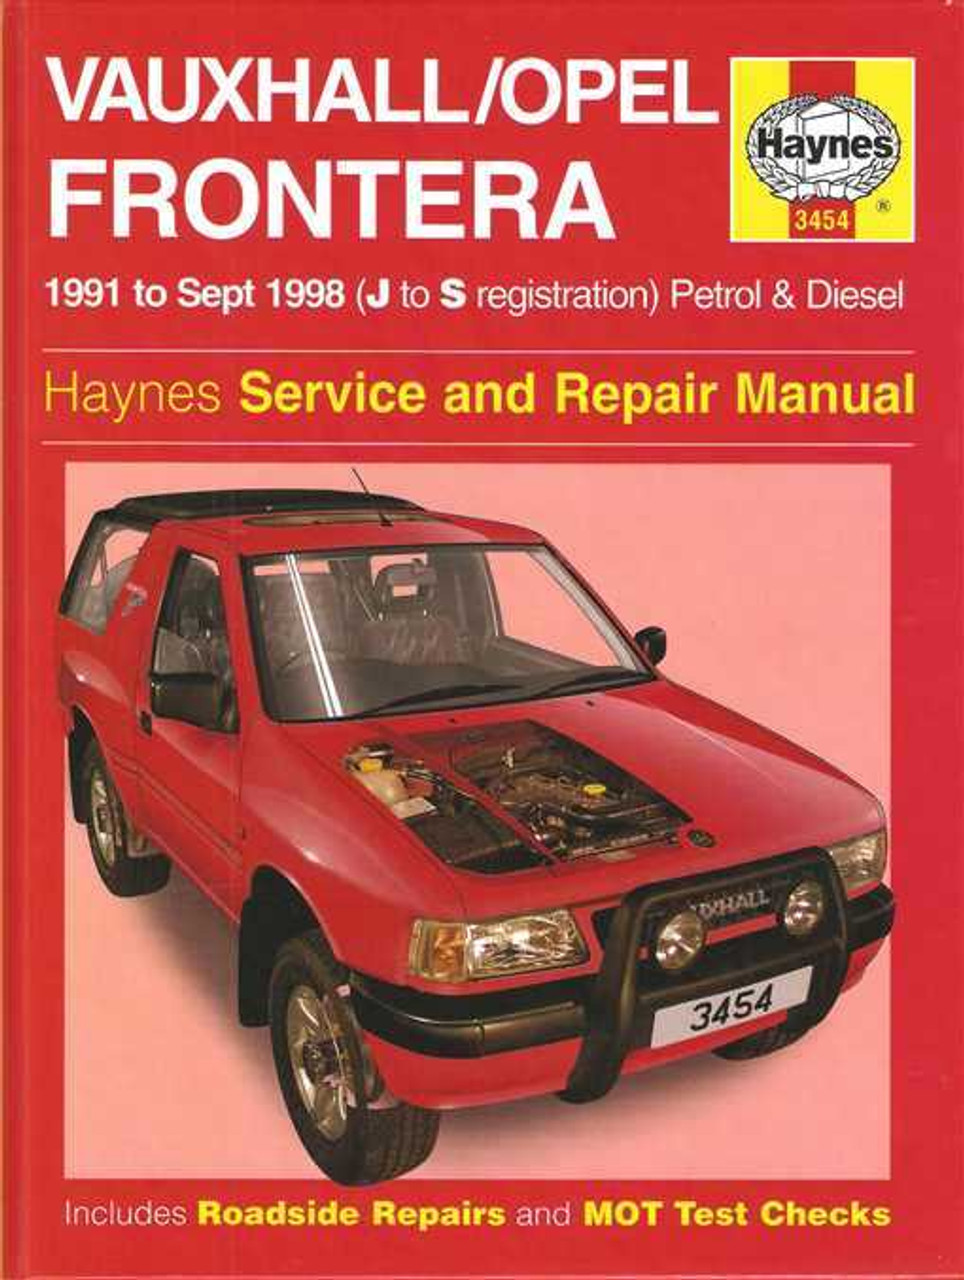 Holden frontera petrol and diesel 1991 1998 workshop manual fandeluxe Choice Image